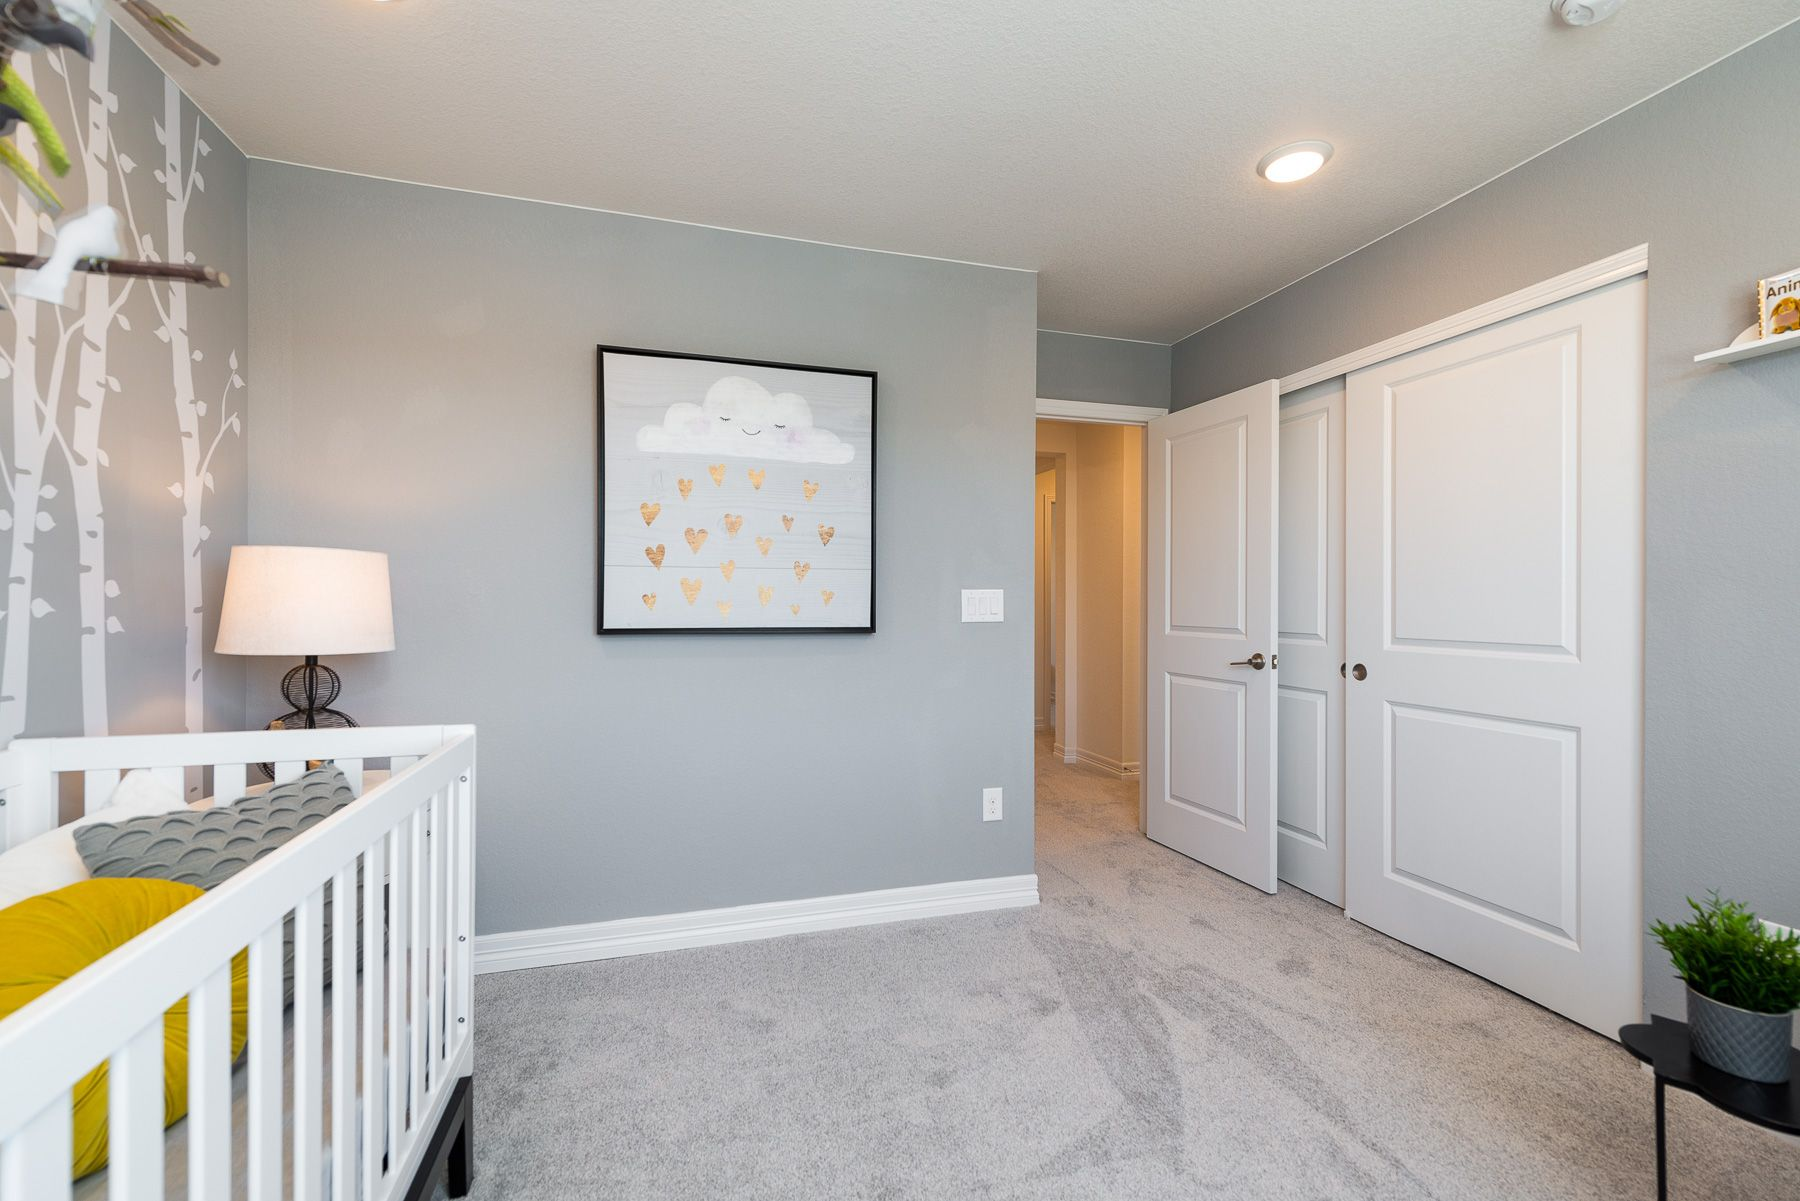 Bedroom featured in the Calvin By Lokal Homes in Denver, CO